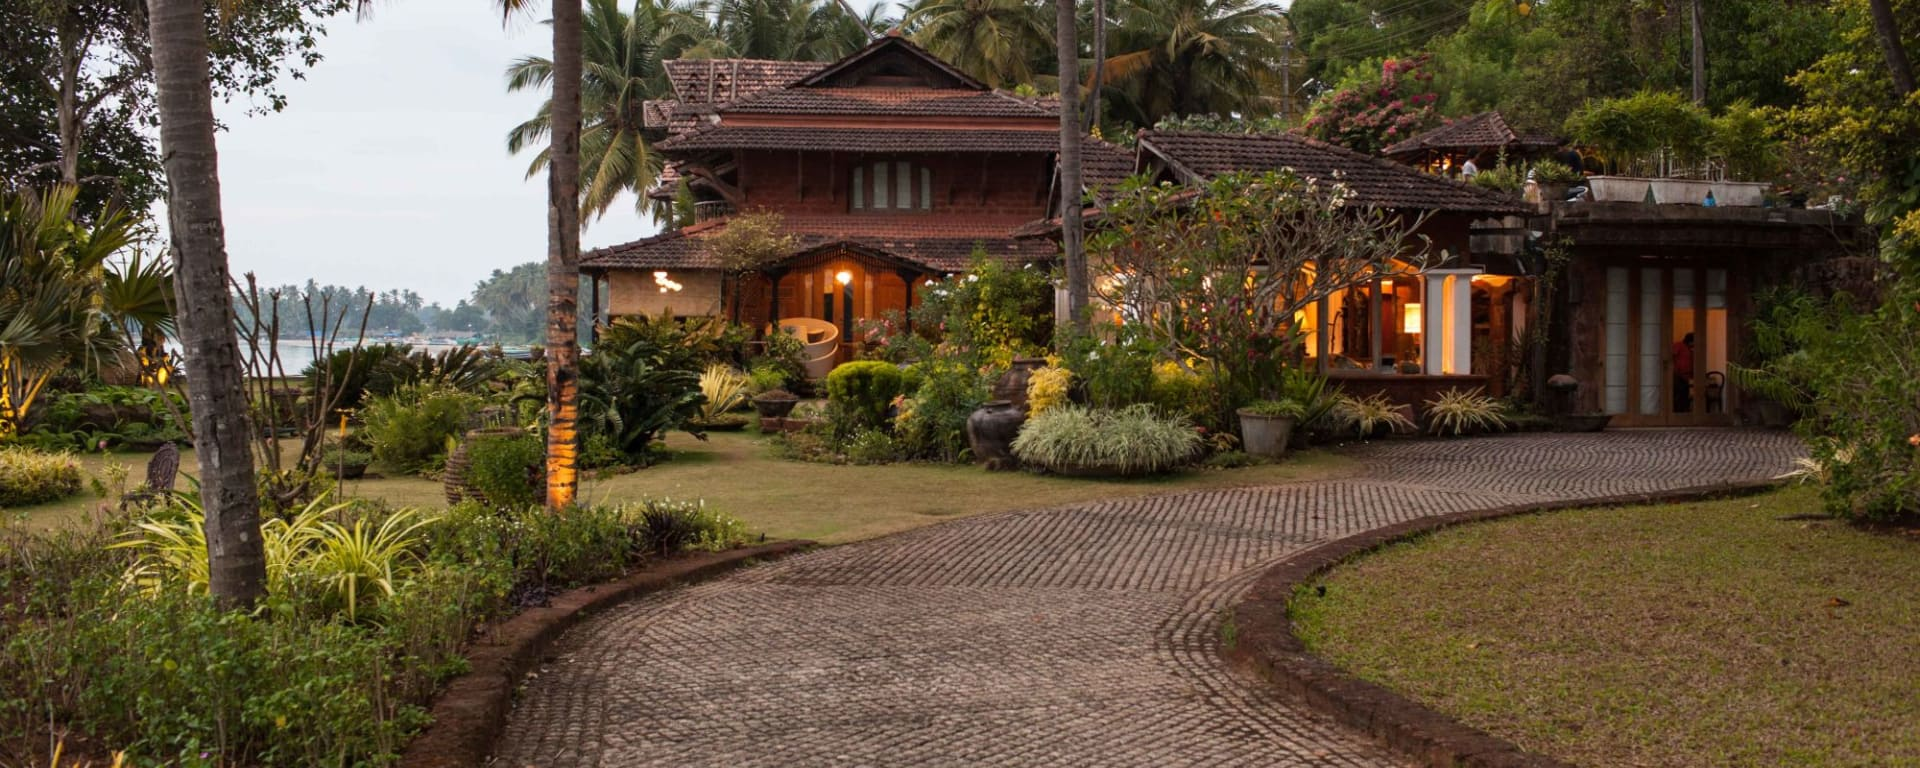 Ahilya by the Sea in Goa: Walkway